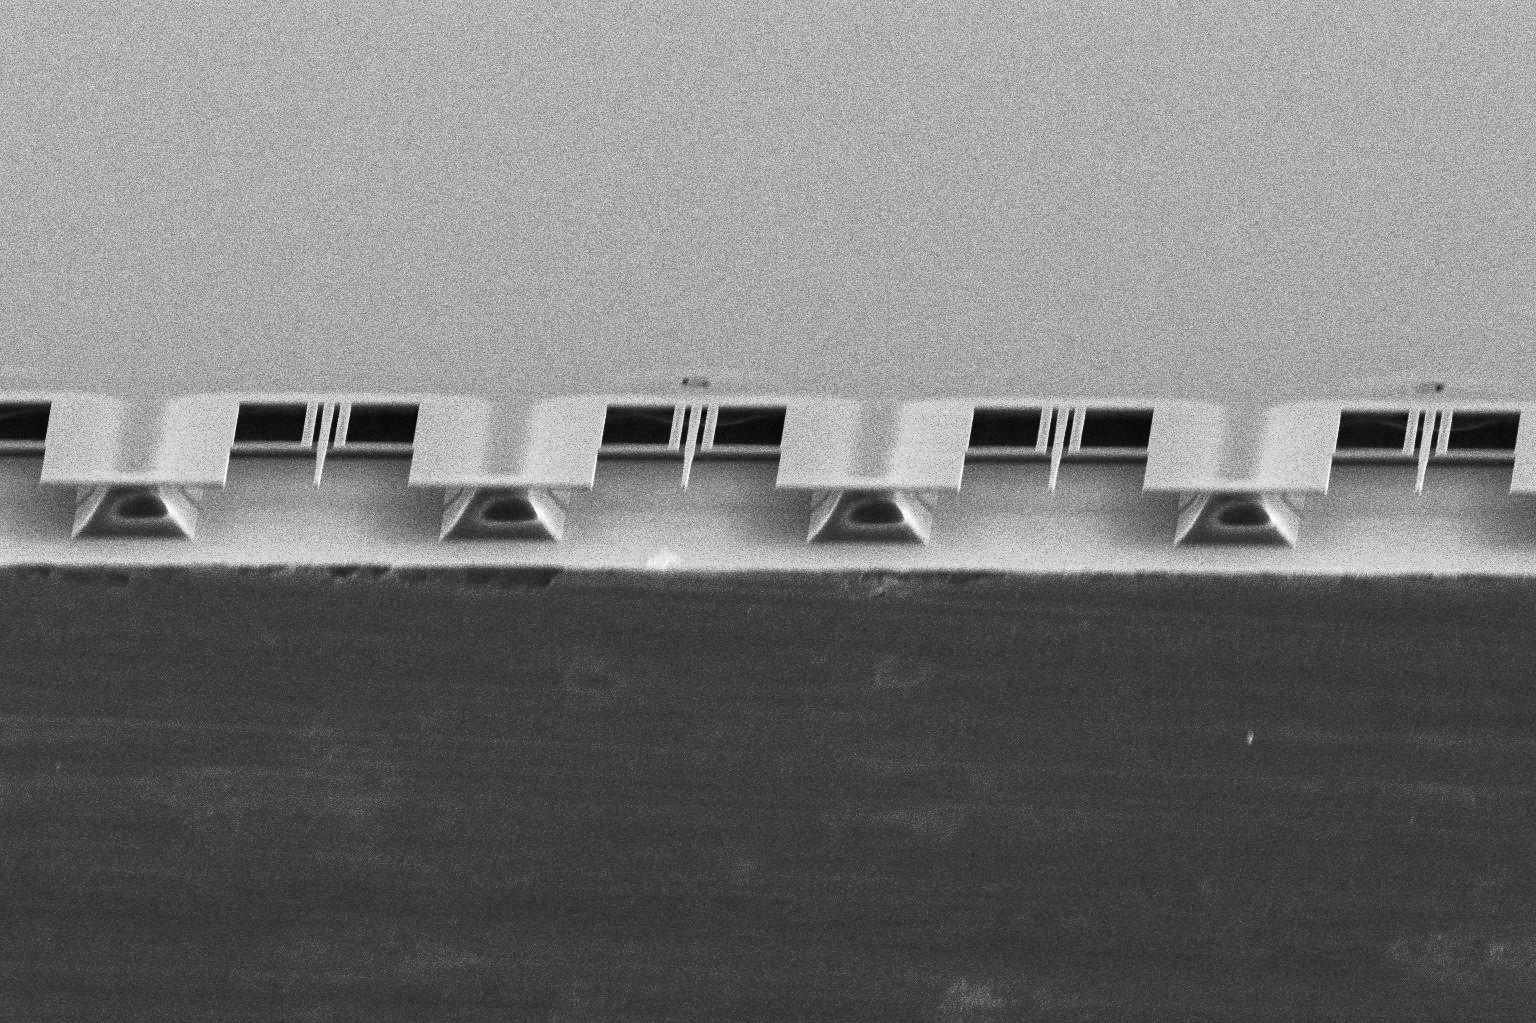 Microscopic image of 10-micrometer-long silicon beams